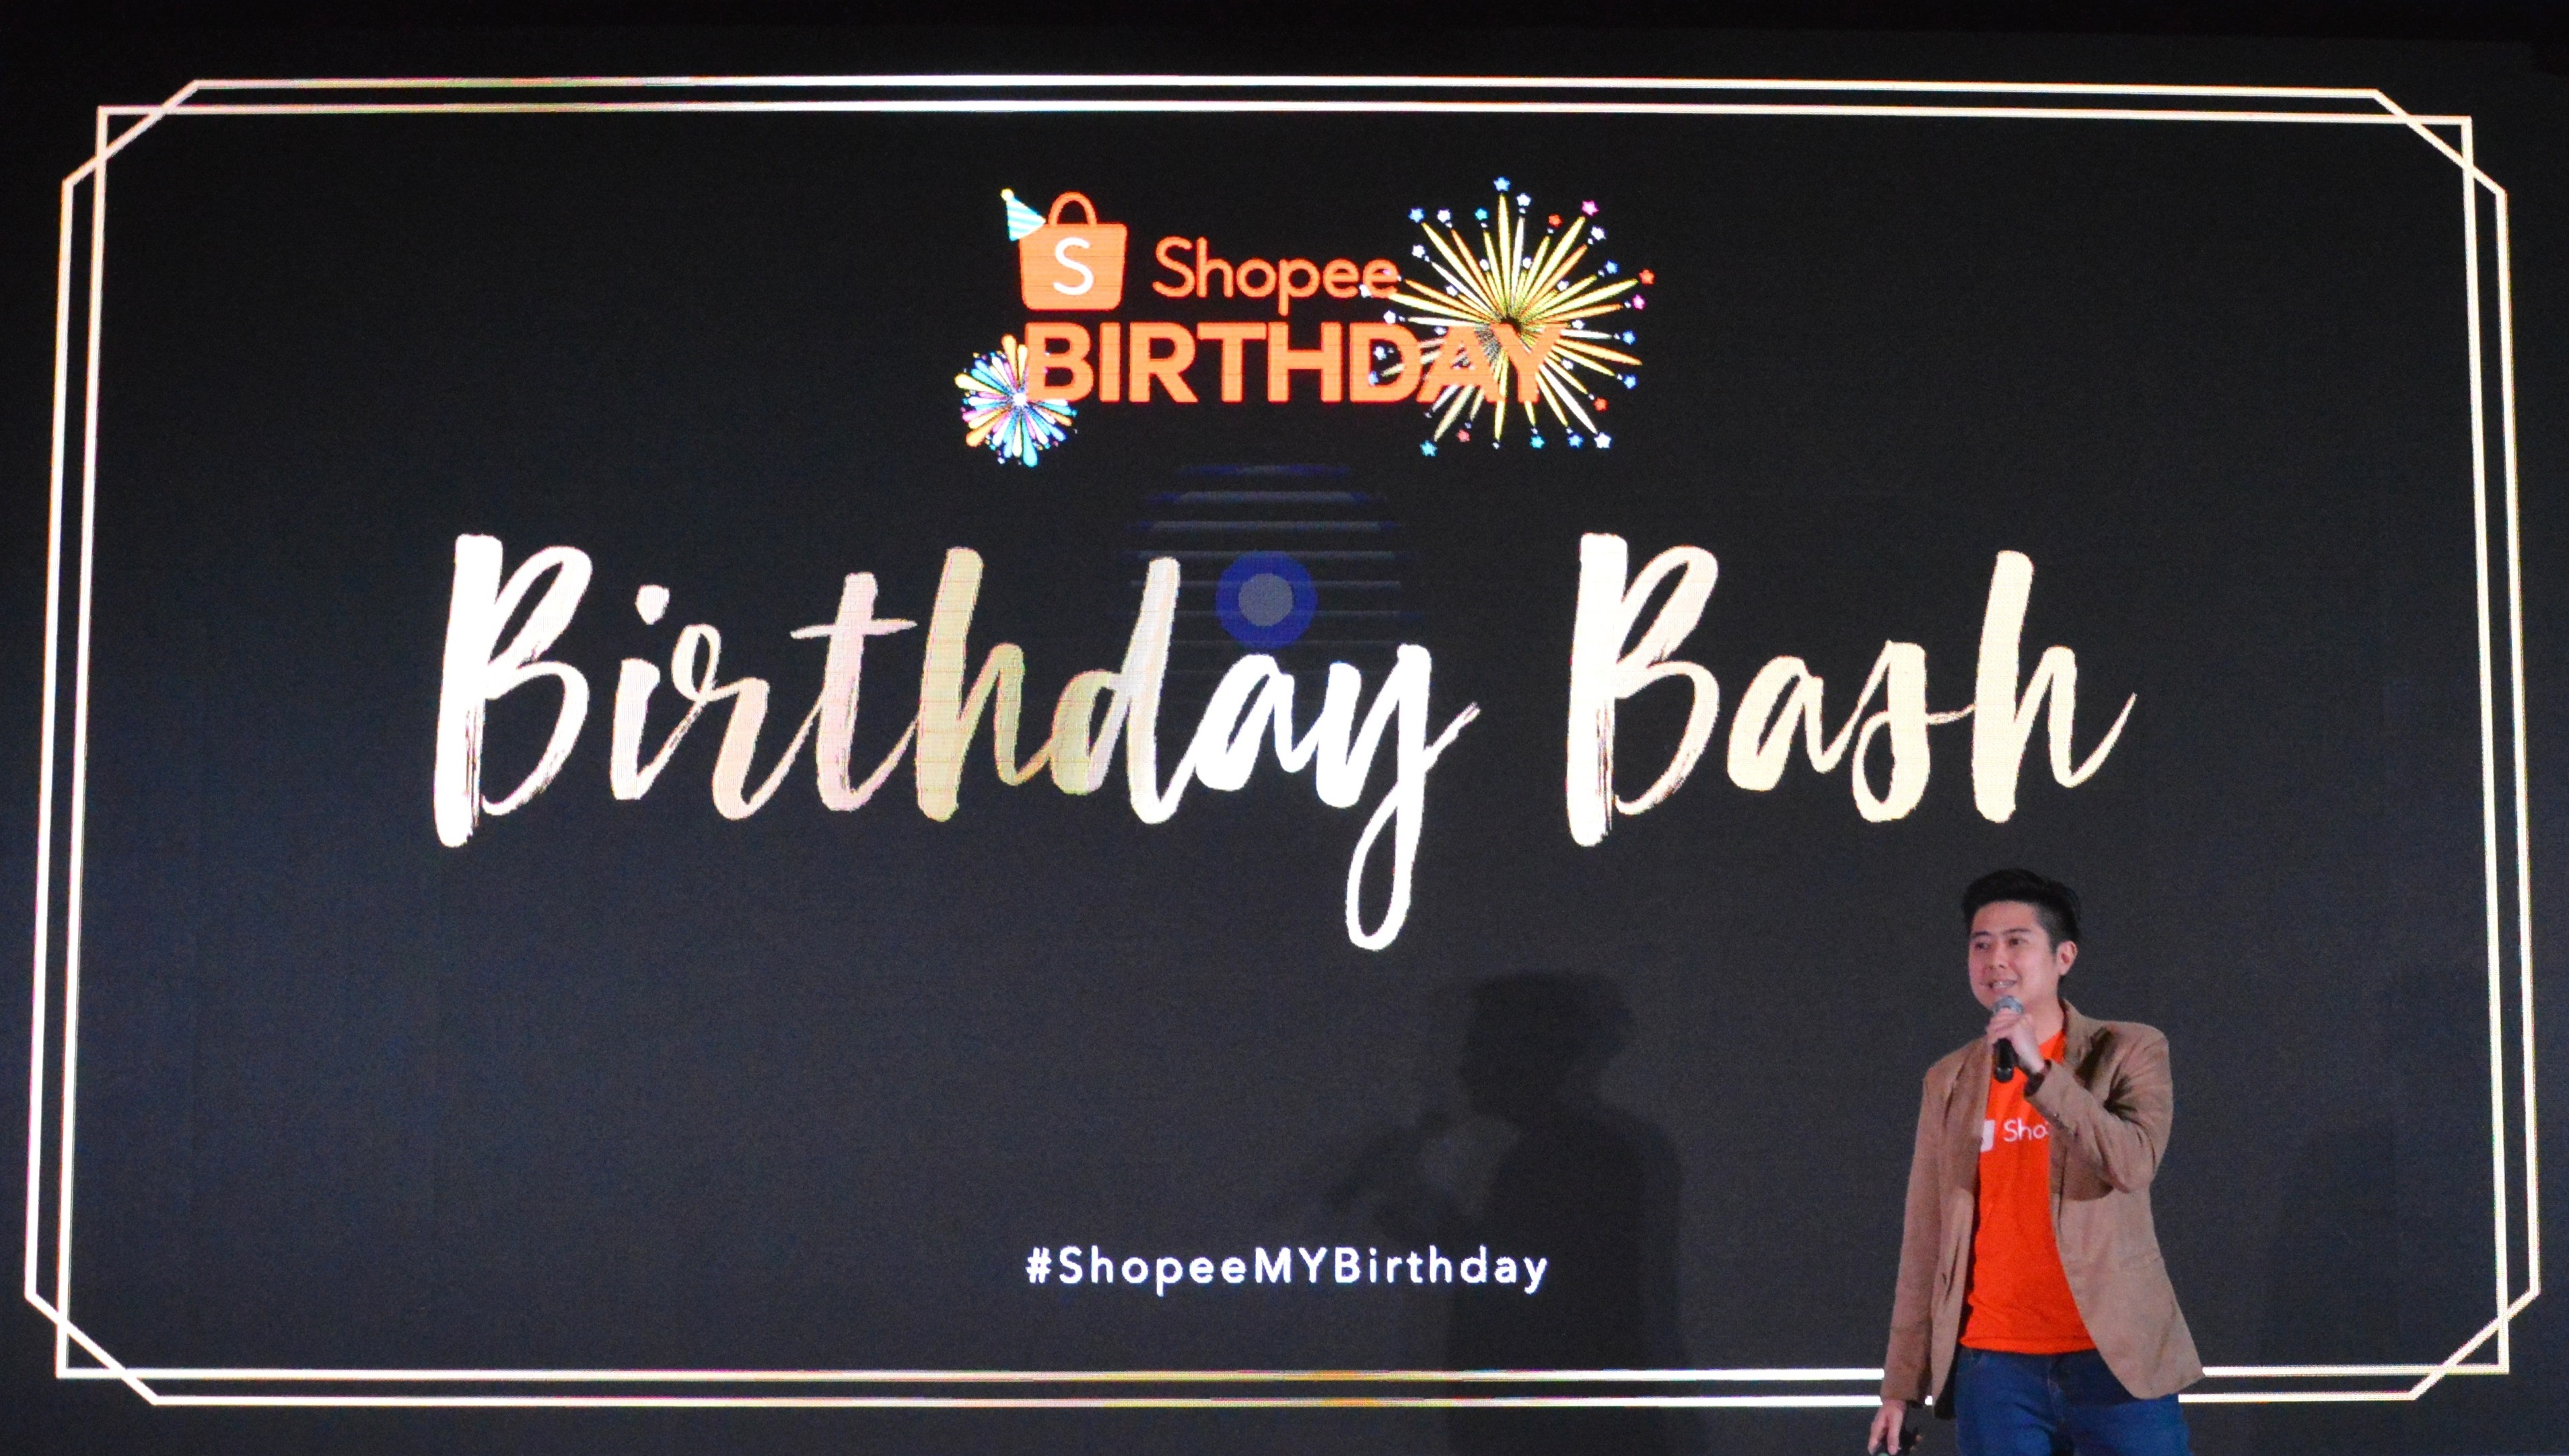 Afo Radio Events Tendencies Kaos Japanese City Hitam L Shopee Celebrates Birthday With Massive Promotions Across Over 6 Million Products